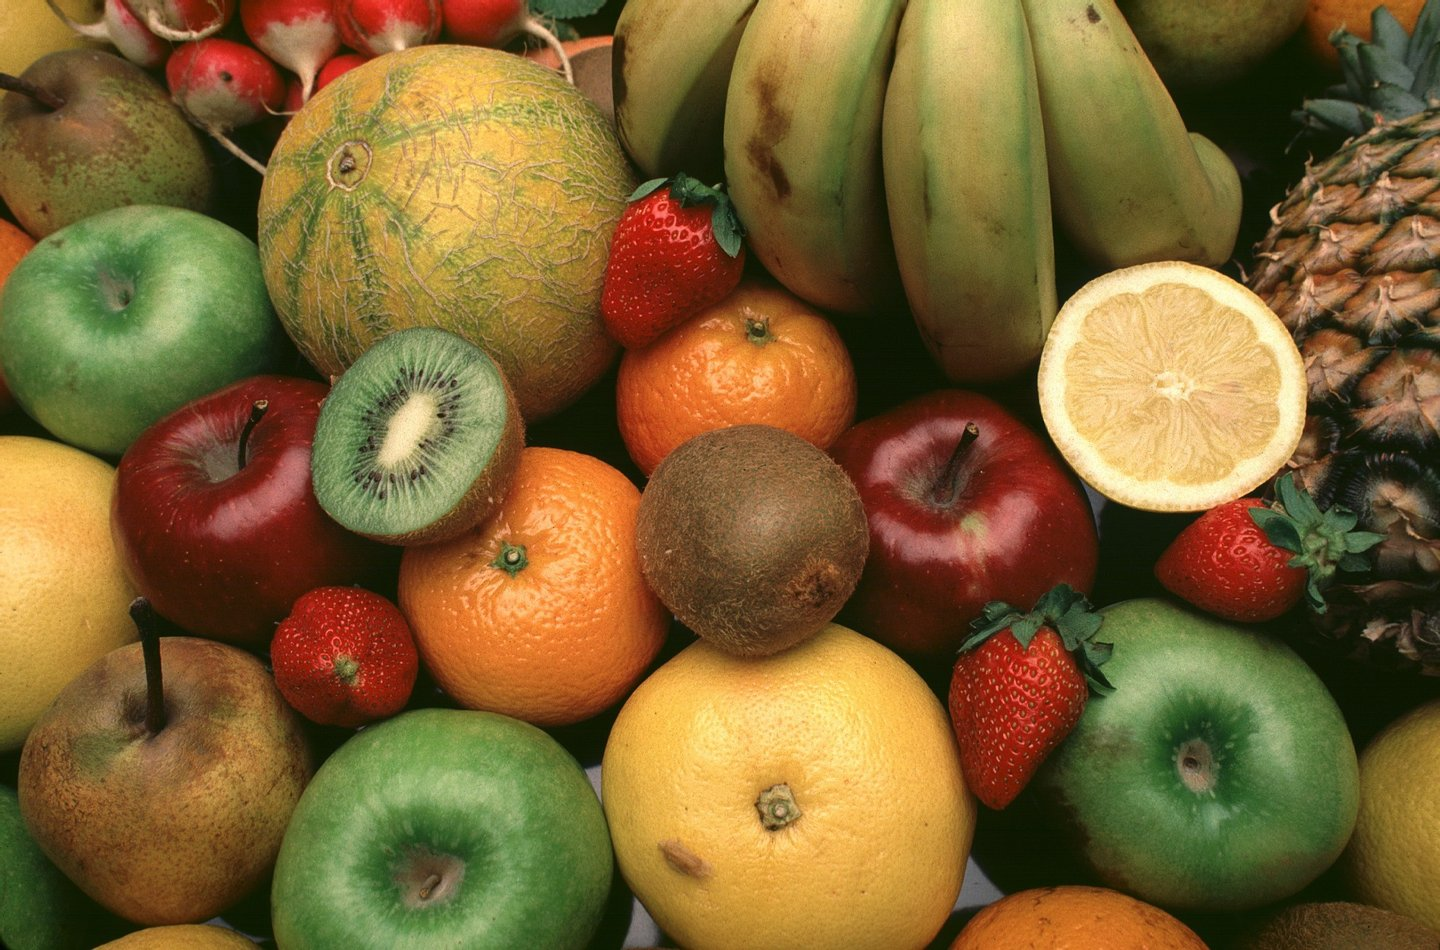 Fruits still life: Oranges, bananas, kiwi, pears, apples, strawberries, pineapple and melon (Photo by Miguel Palacios/Cover/Getty Images)